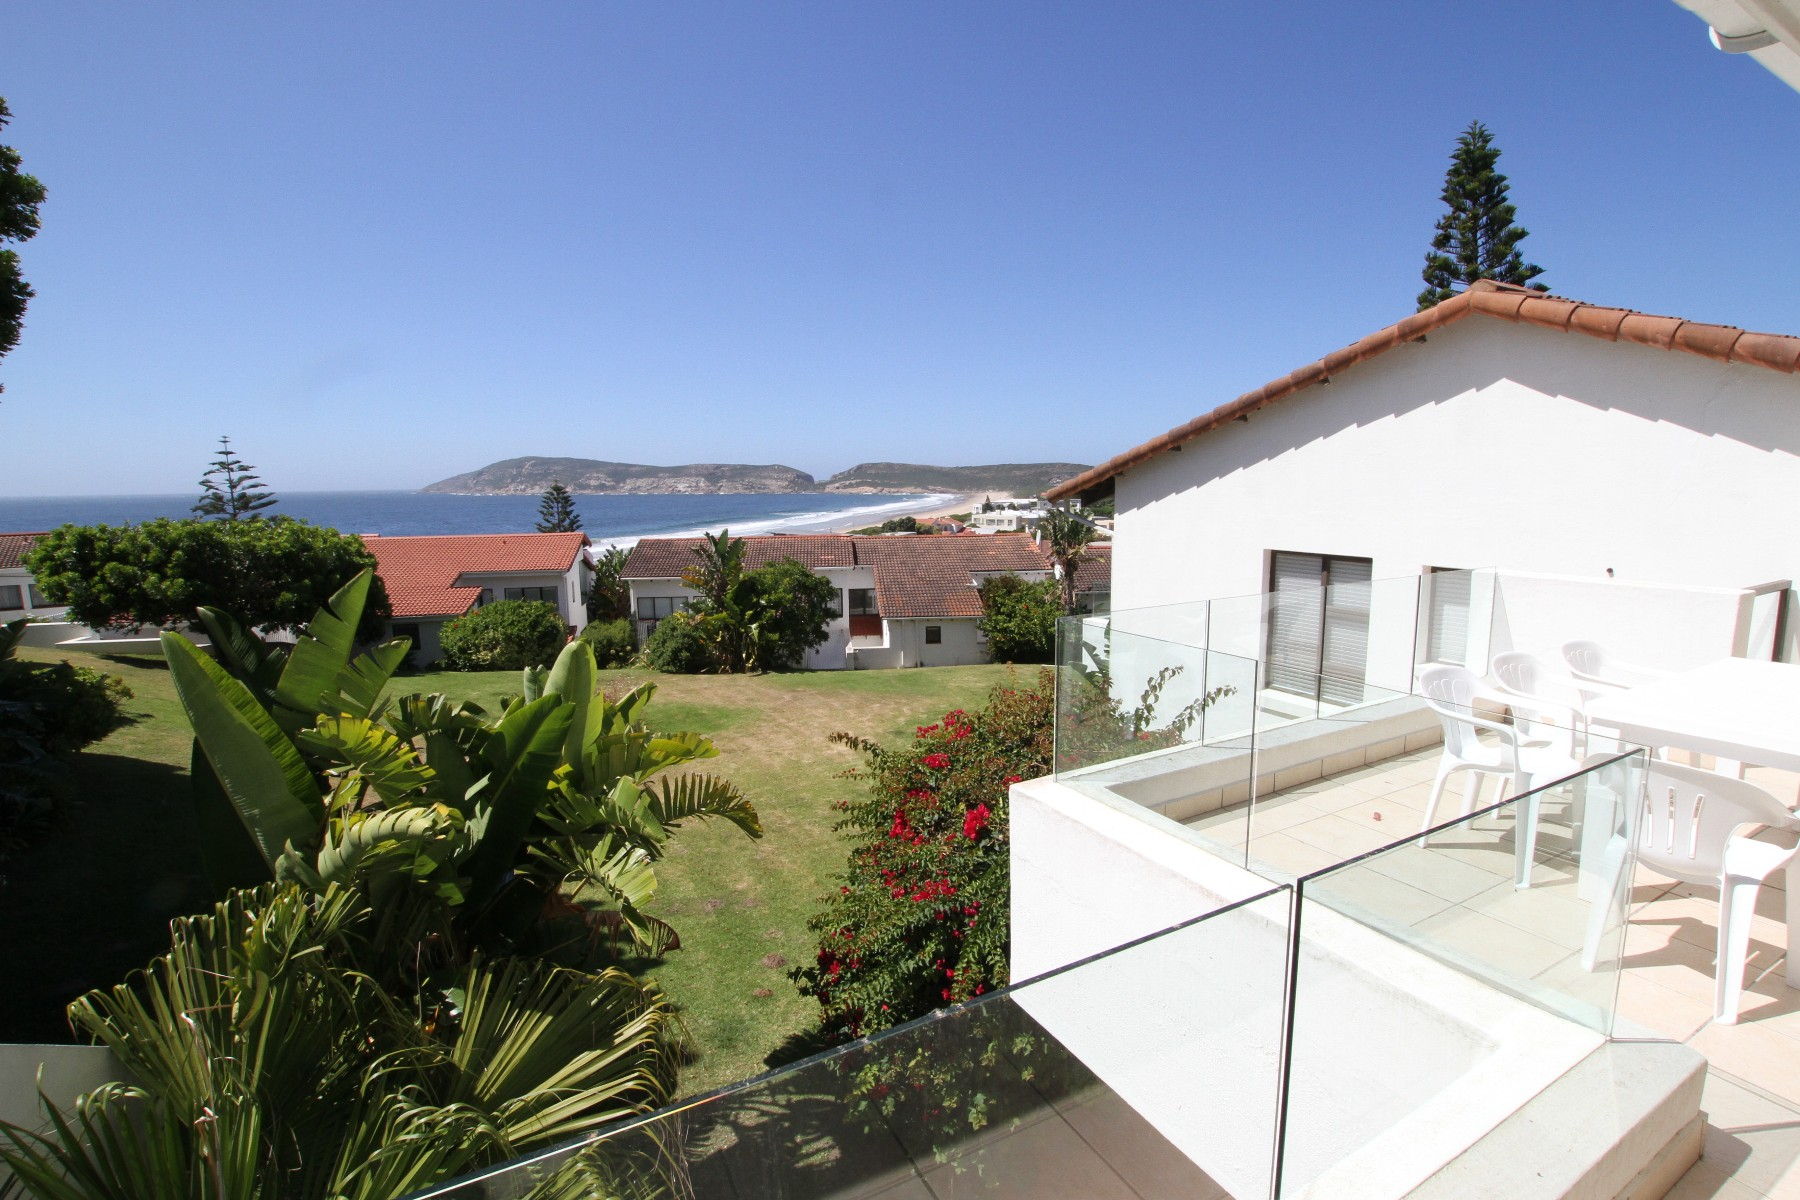 Townhouse for Sale at Townhouse with a Sea View Plettenberg Bay, Western Cape, 6600 South Africa